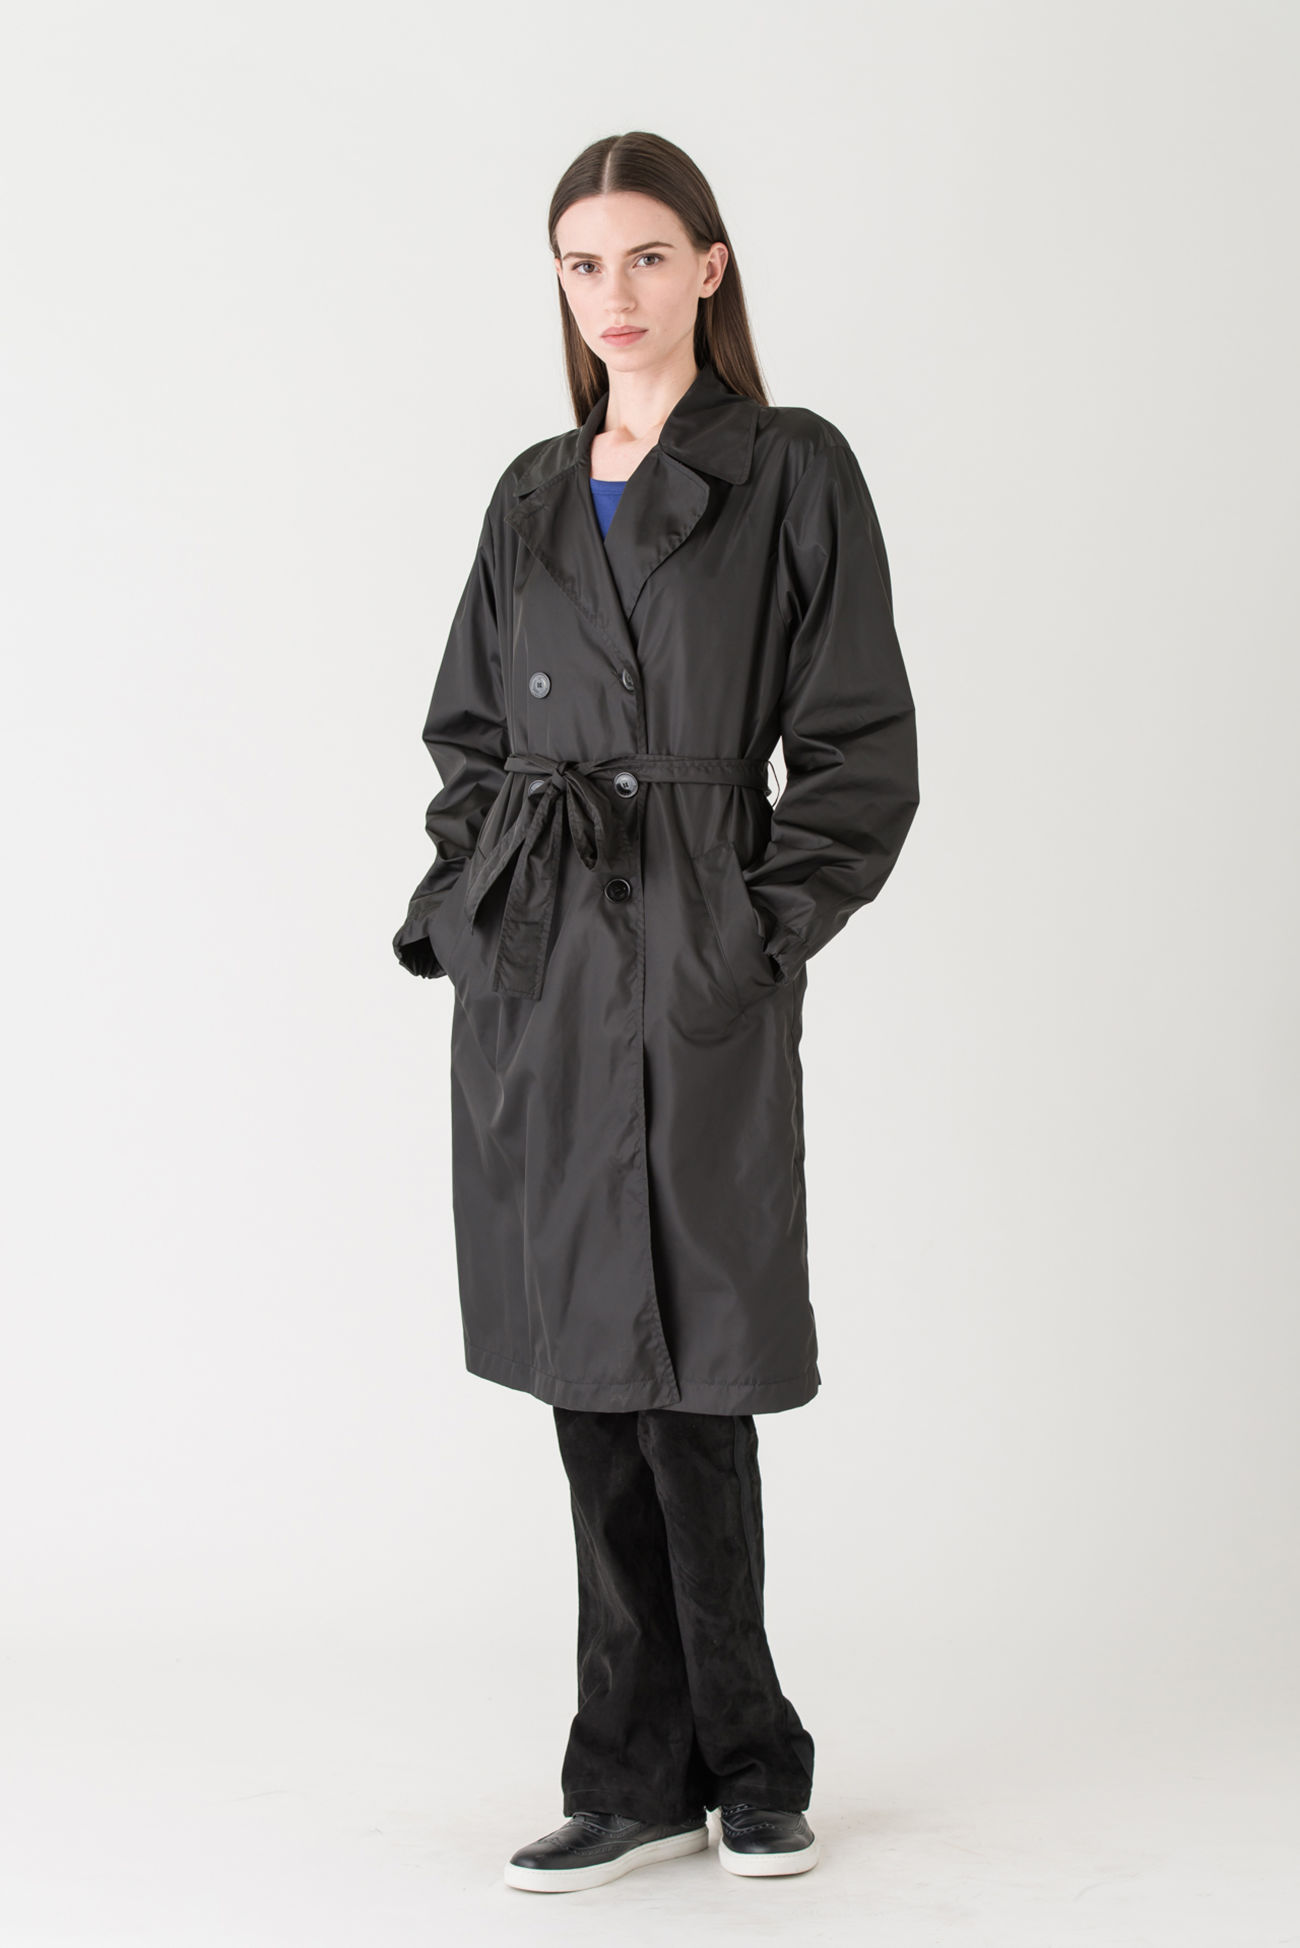 Superior rain coat made of exquisite material